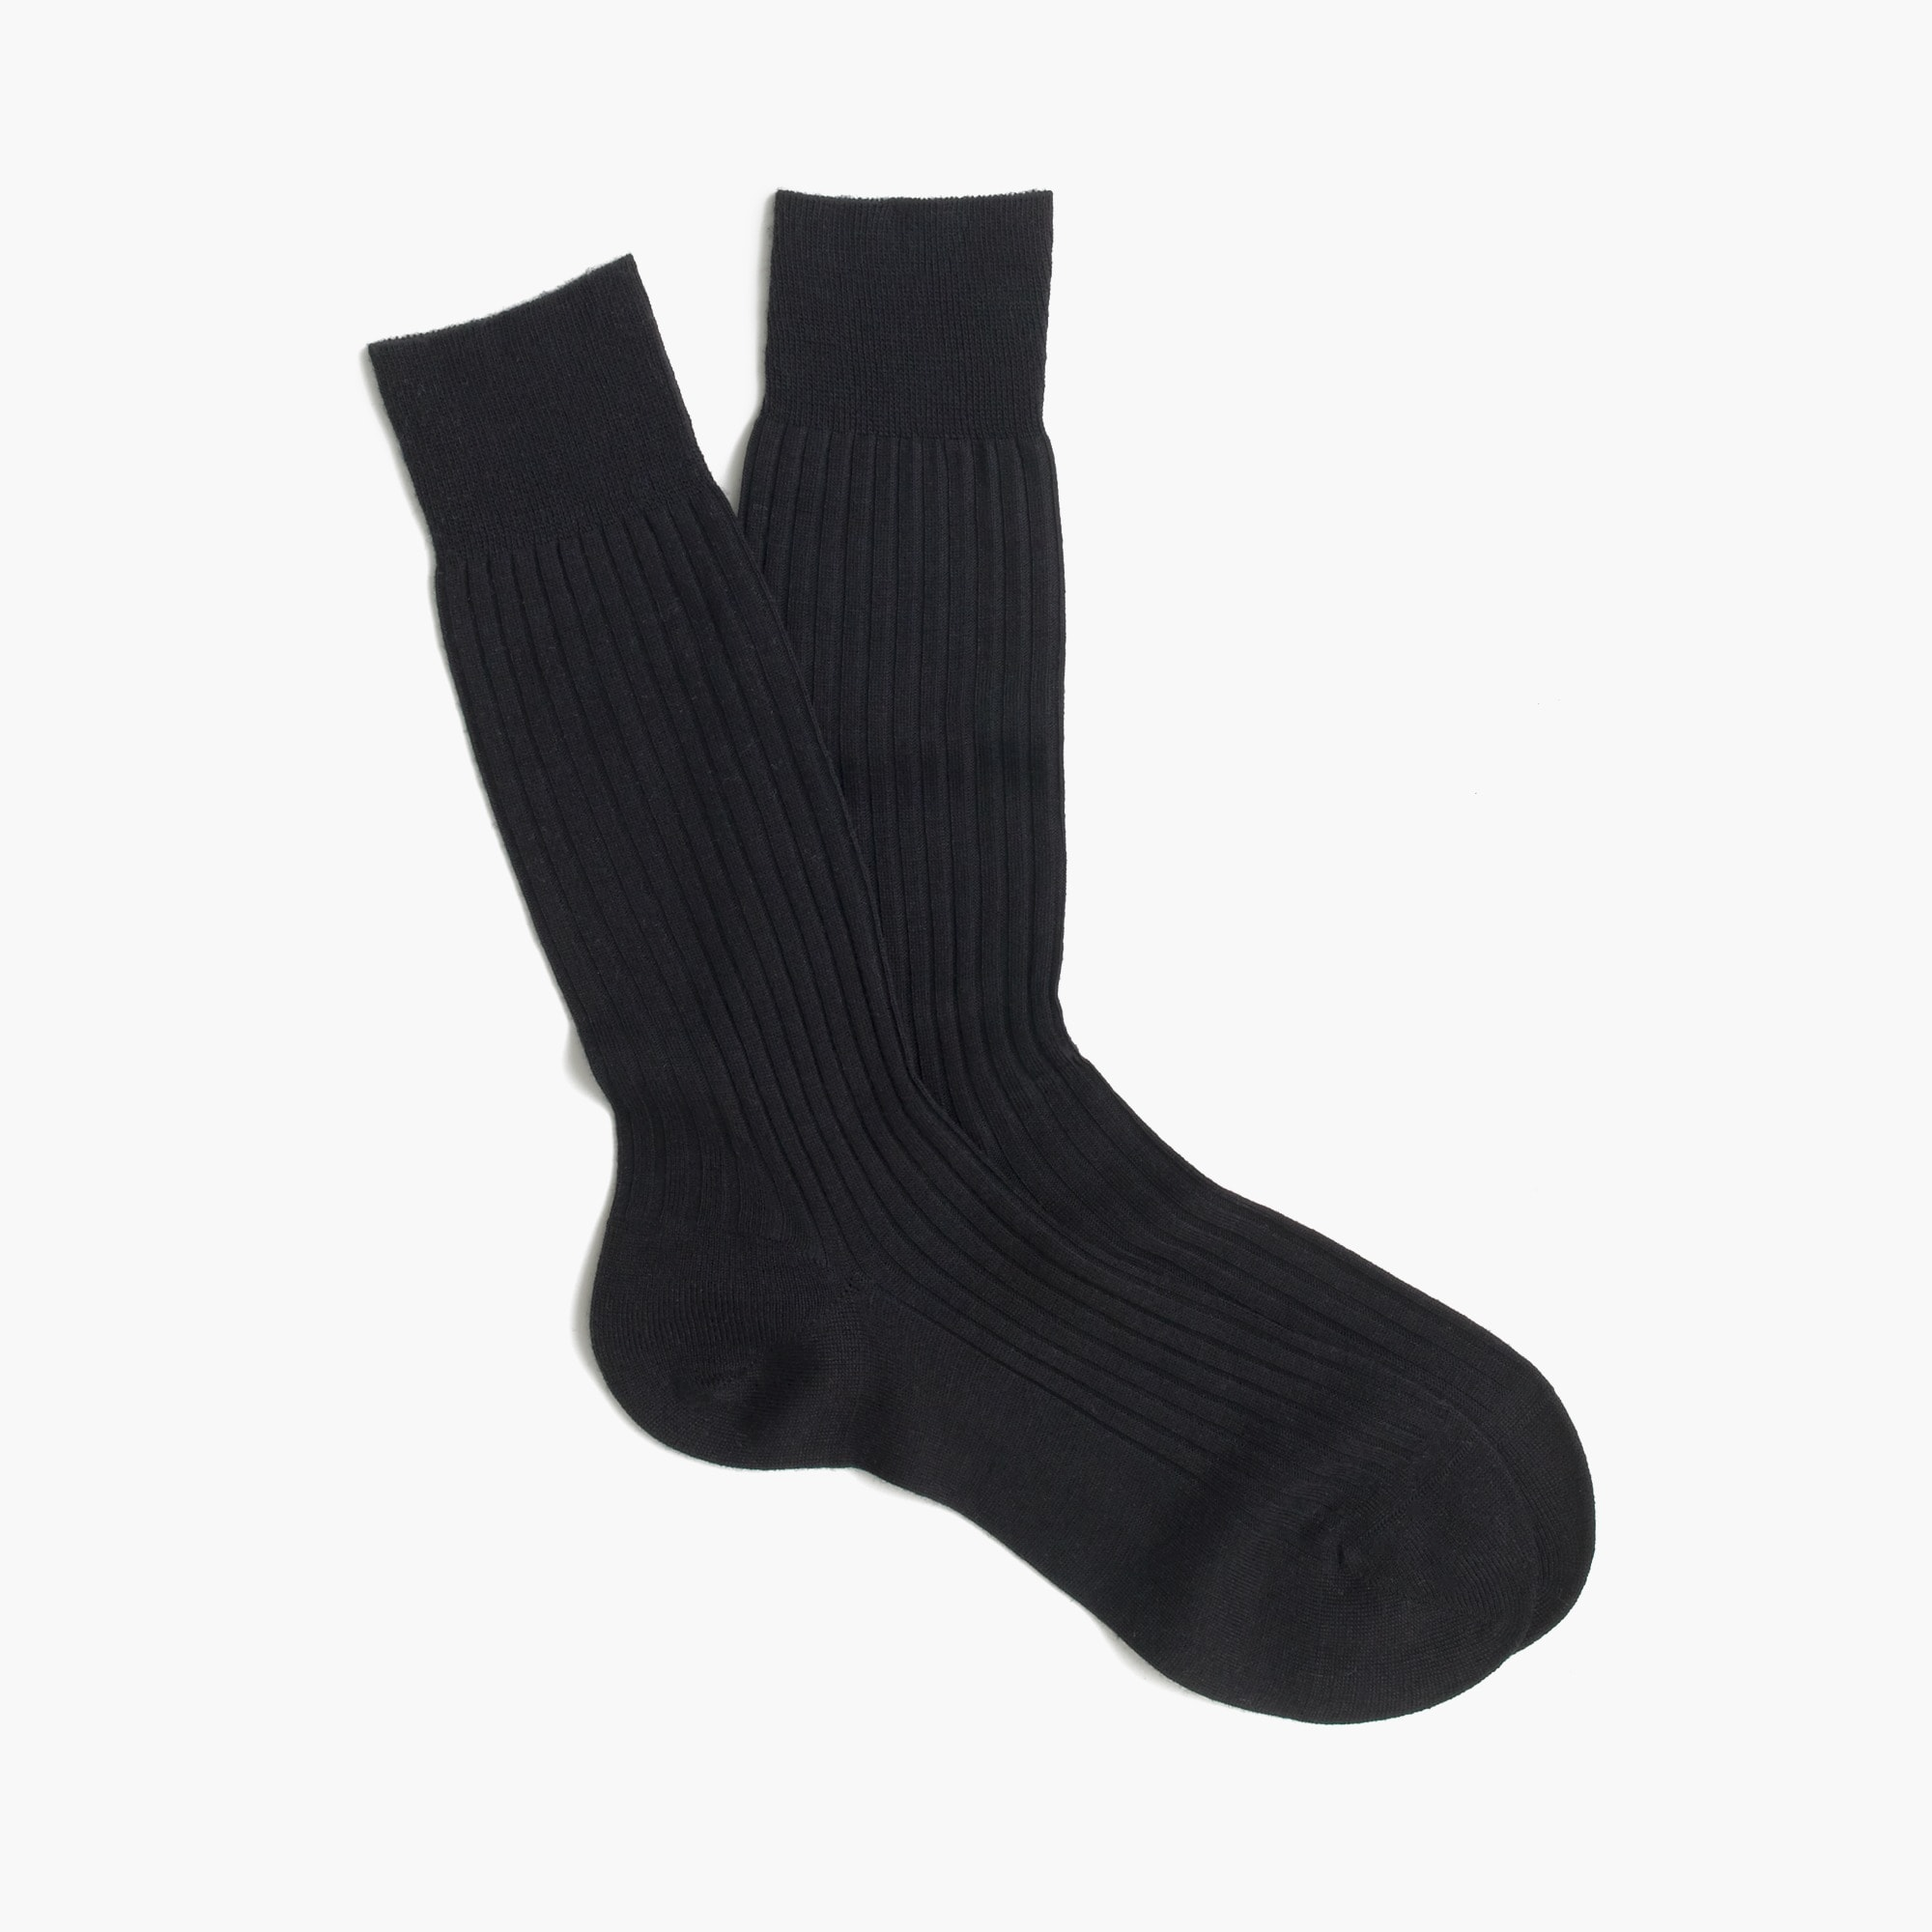 Pantherella® merino dress socks